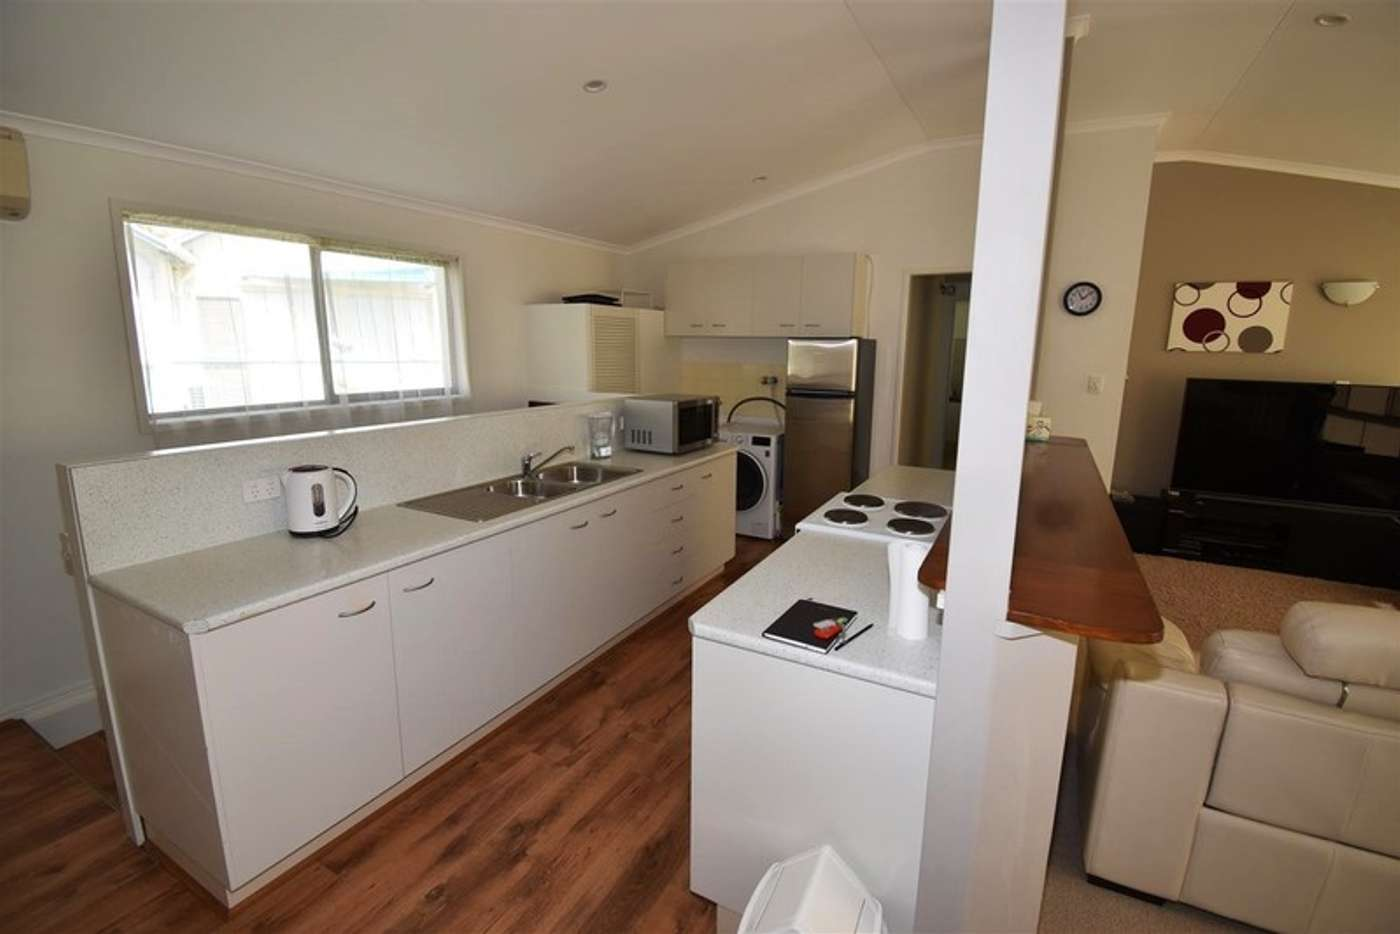 Sixth view of Homely unit listing, 2/50 Elizabeth Street, Noosaville QLD 4566